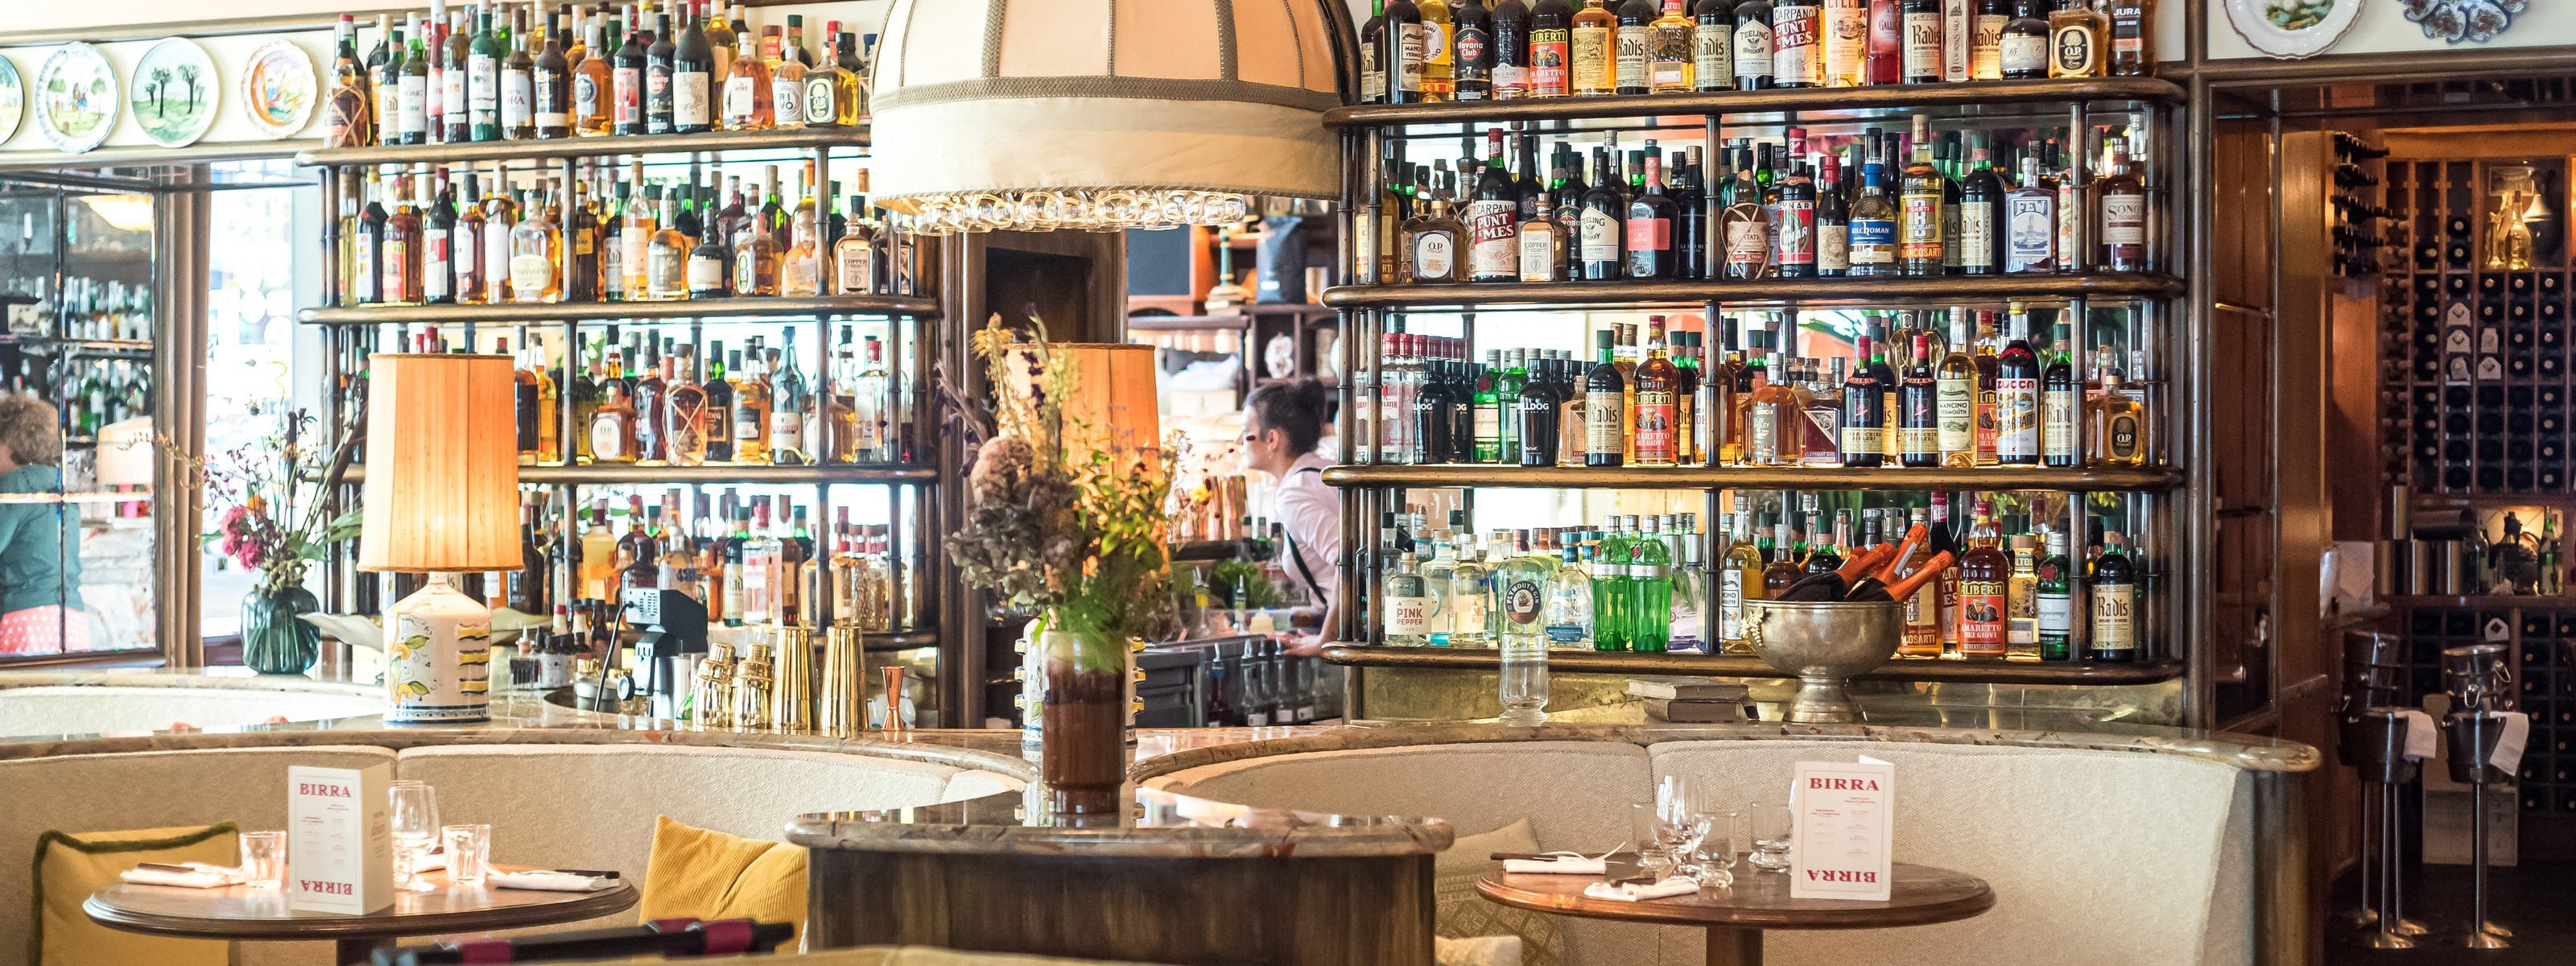 18 Restaurants For When You Need To Act Like You're Living Your Best Life (For Social Media) - London - The Infatuation